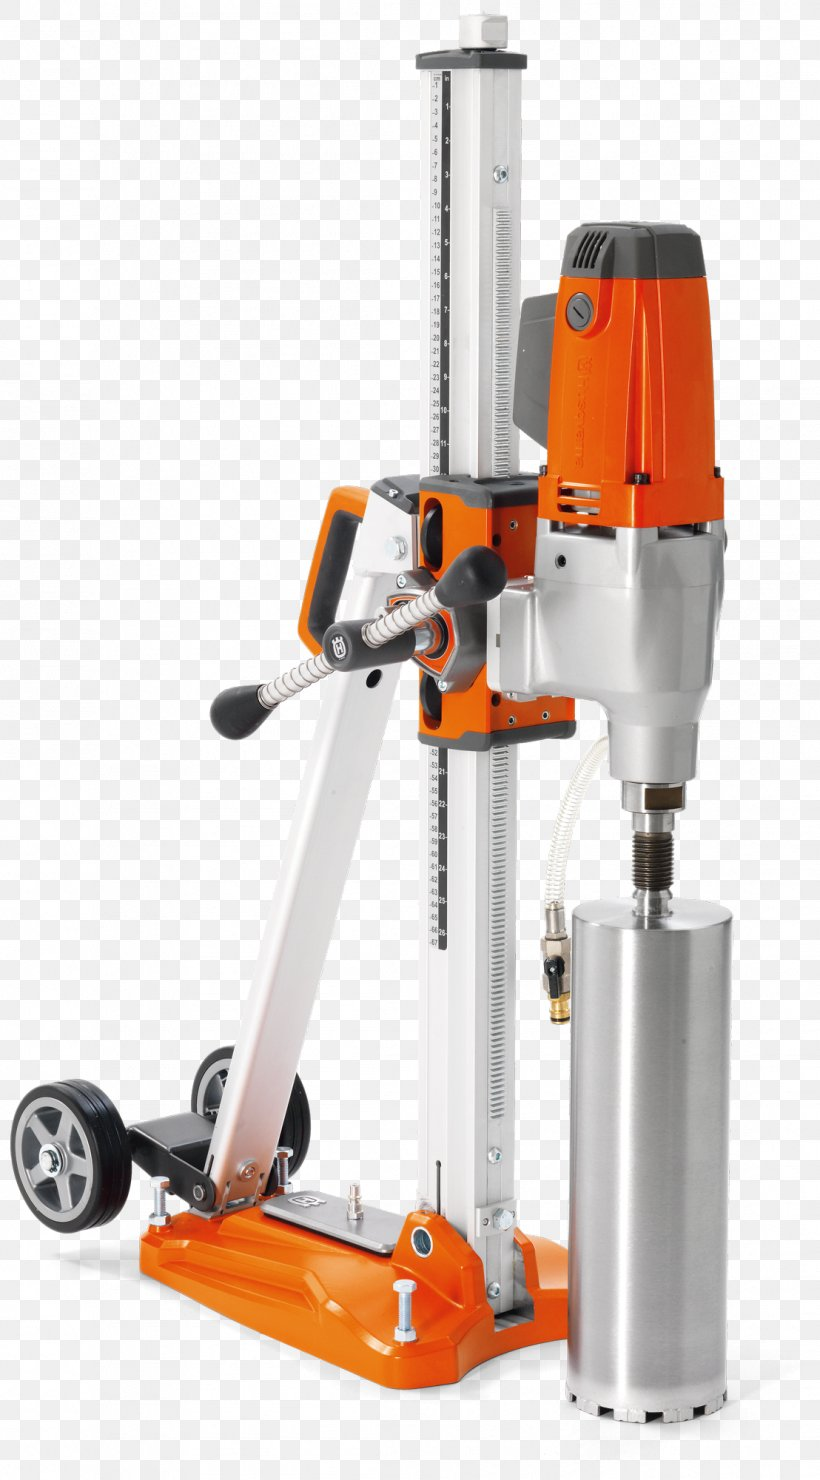 Core Drill Augers Hammer Drill Building Materials Architectural Engineering, PNG, 1108x2000px, Core Drill, Architectural Engineering, Augers, Building, Building Materials Download Free